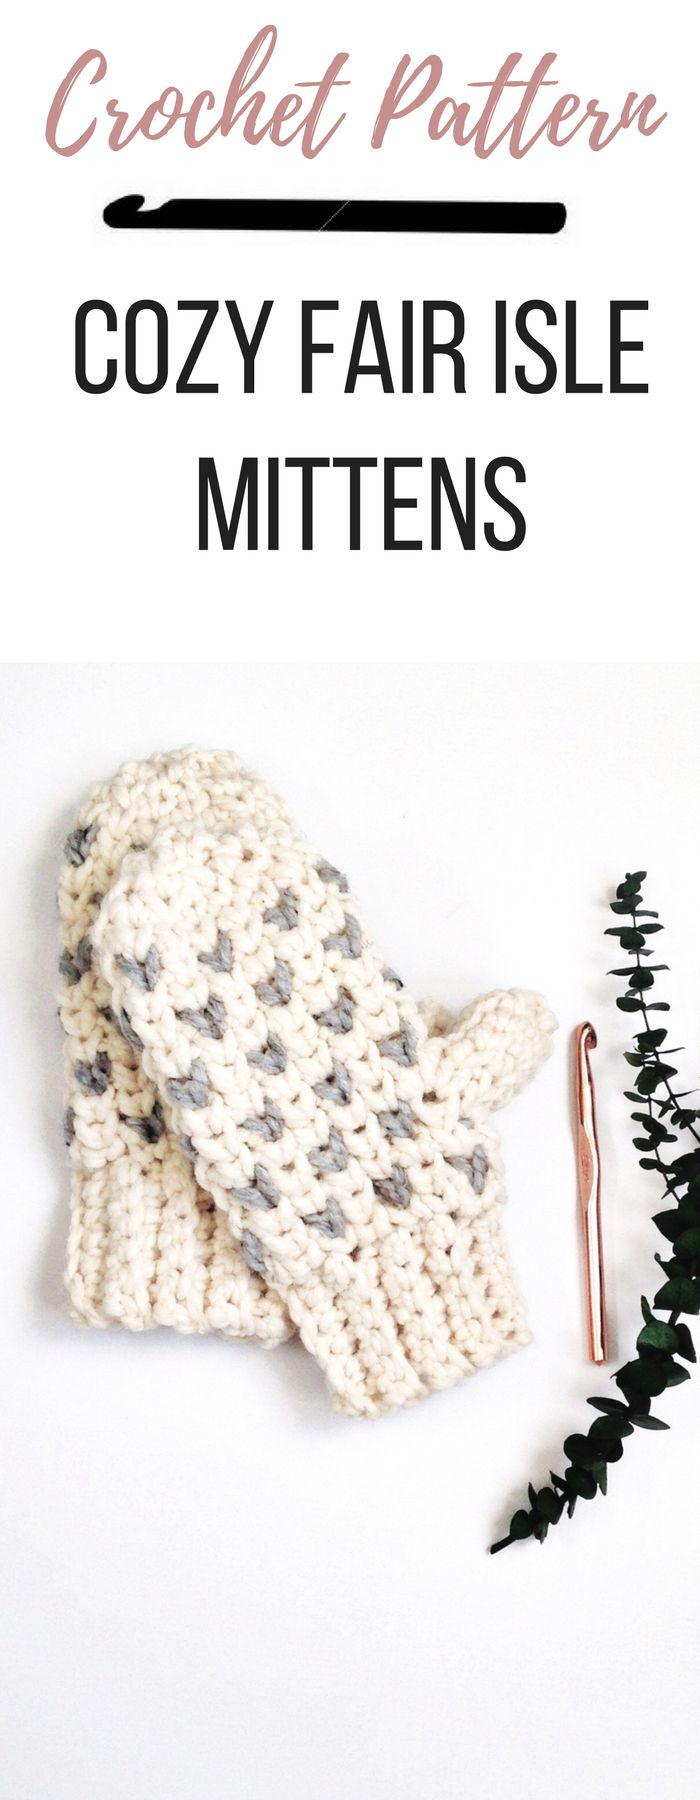 A quick crochet mittens pattern that uses the fair isle crochet technique. Kids and adult mittens make great crochet gifts when you make the matching hat.